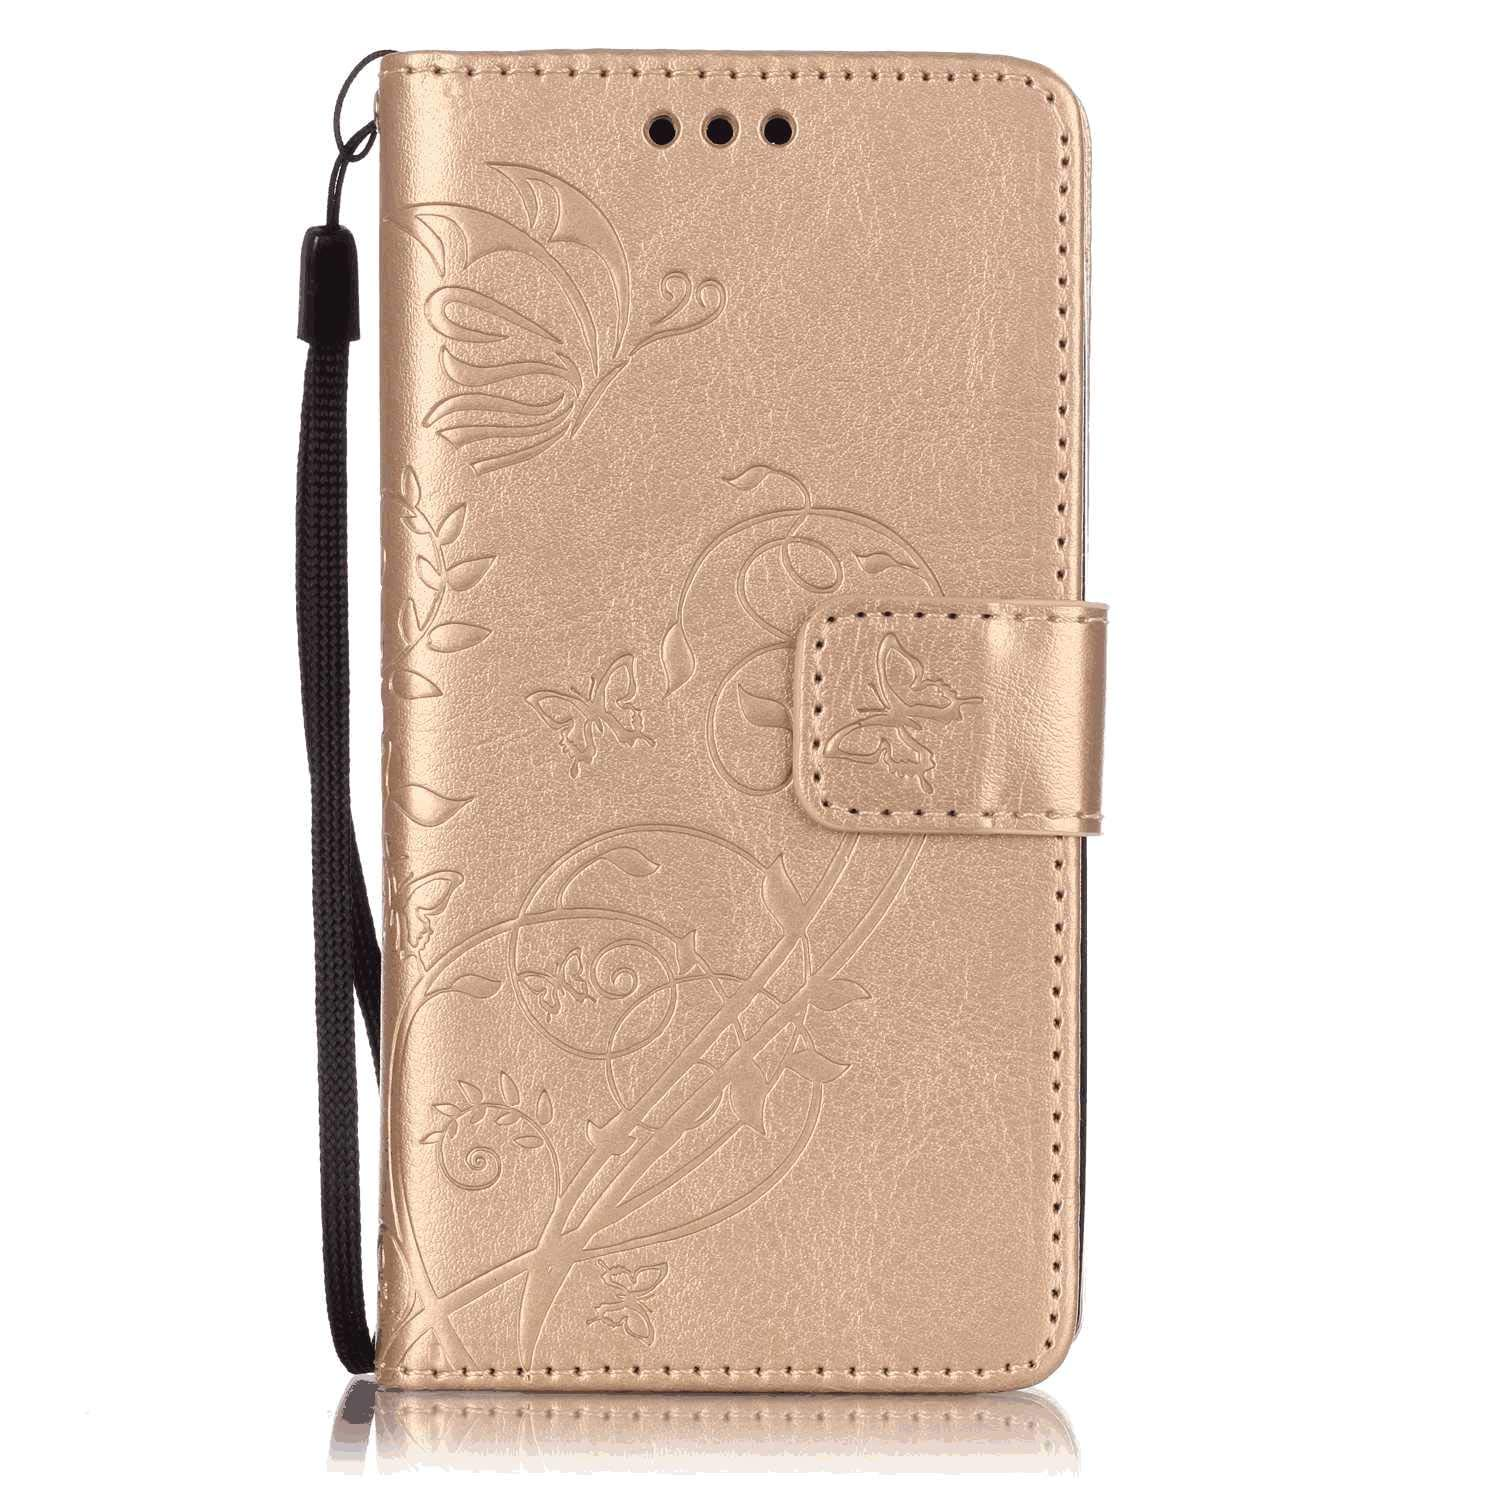 Cover for Leather Luxury Business Kickstand Card Holders wallet case Flip Cover Samsung Galaxy S9 Plus Flip Case